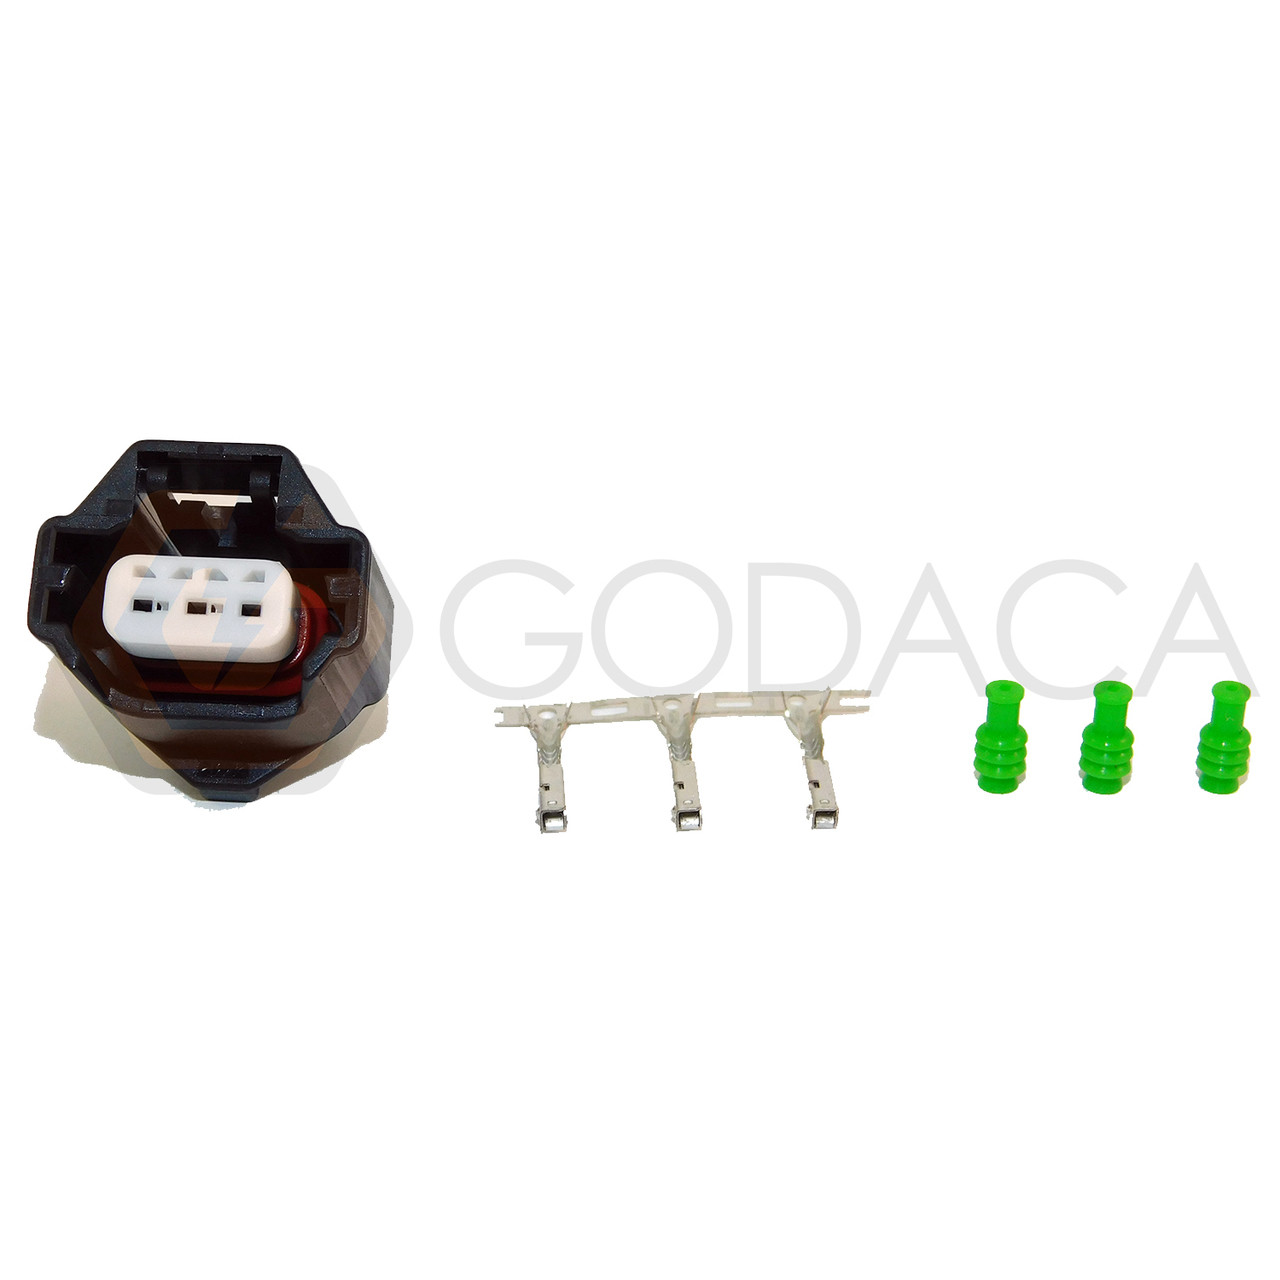 1x connector 3 way 3 pin for camshaft position sensor cps cps0003 w out wire godaca llc  [ 1280 x 1280 Pixel ]